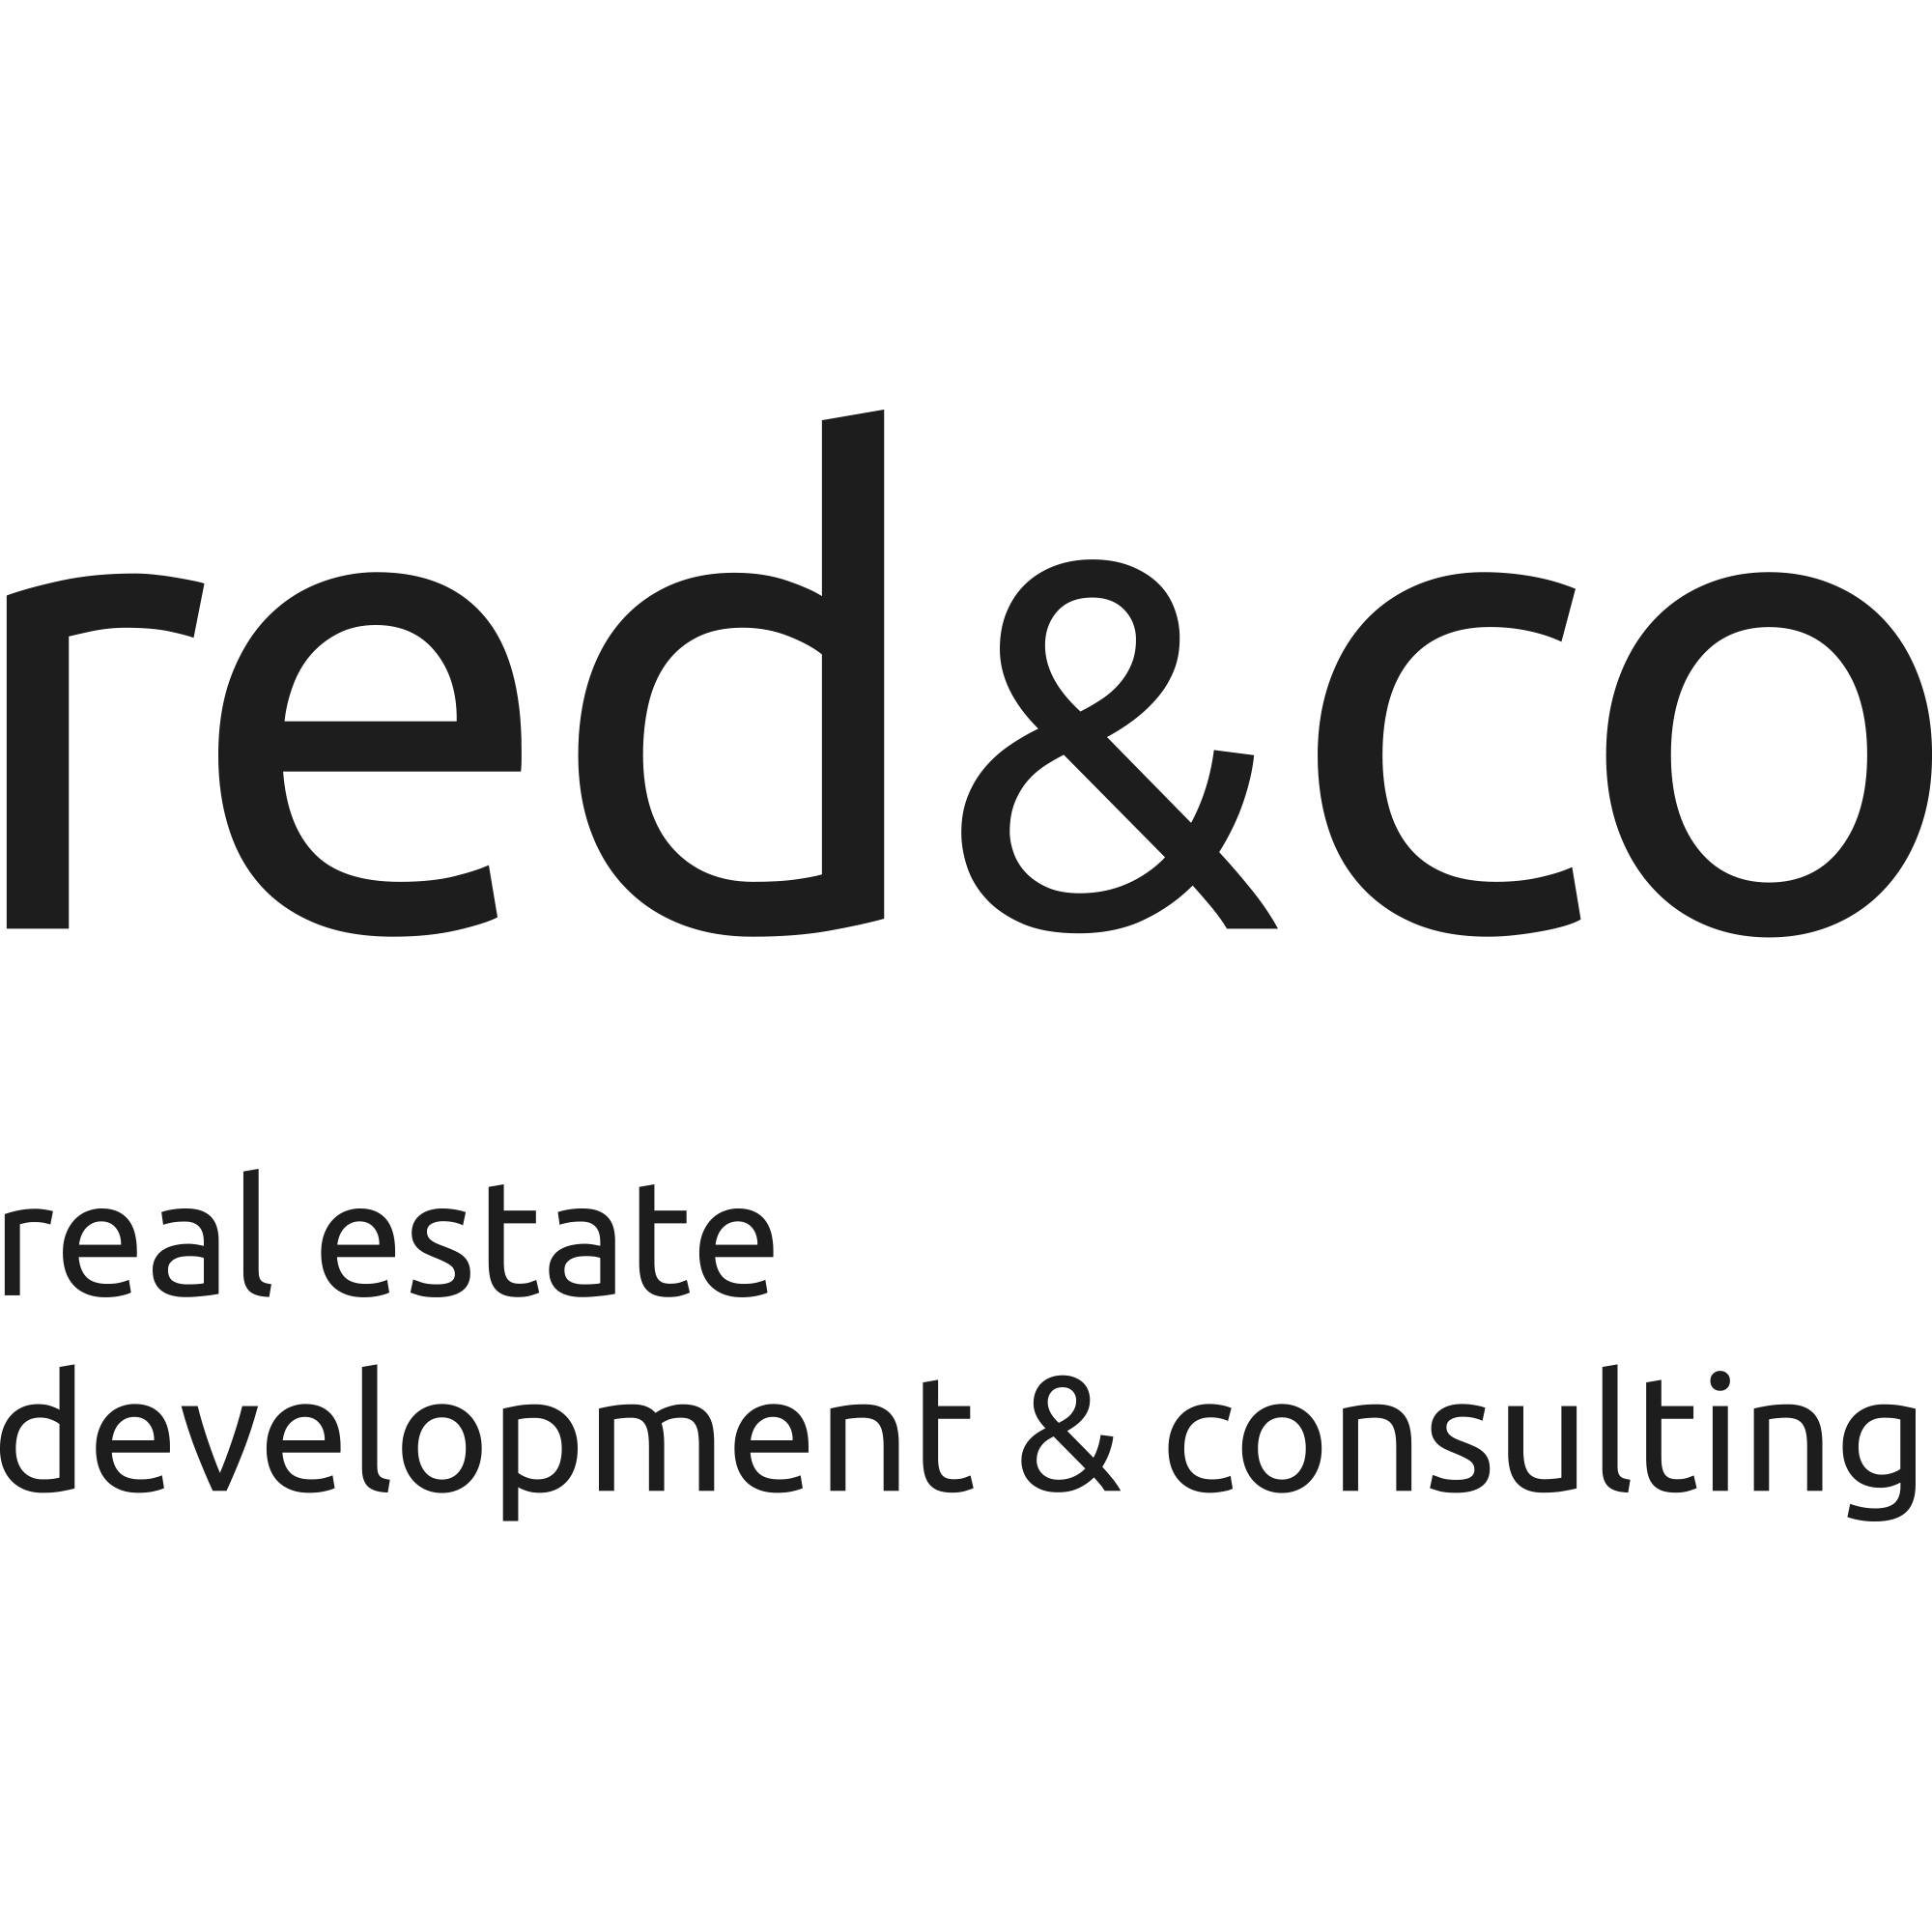 red&co real estate development & consulting Zürich